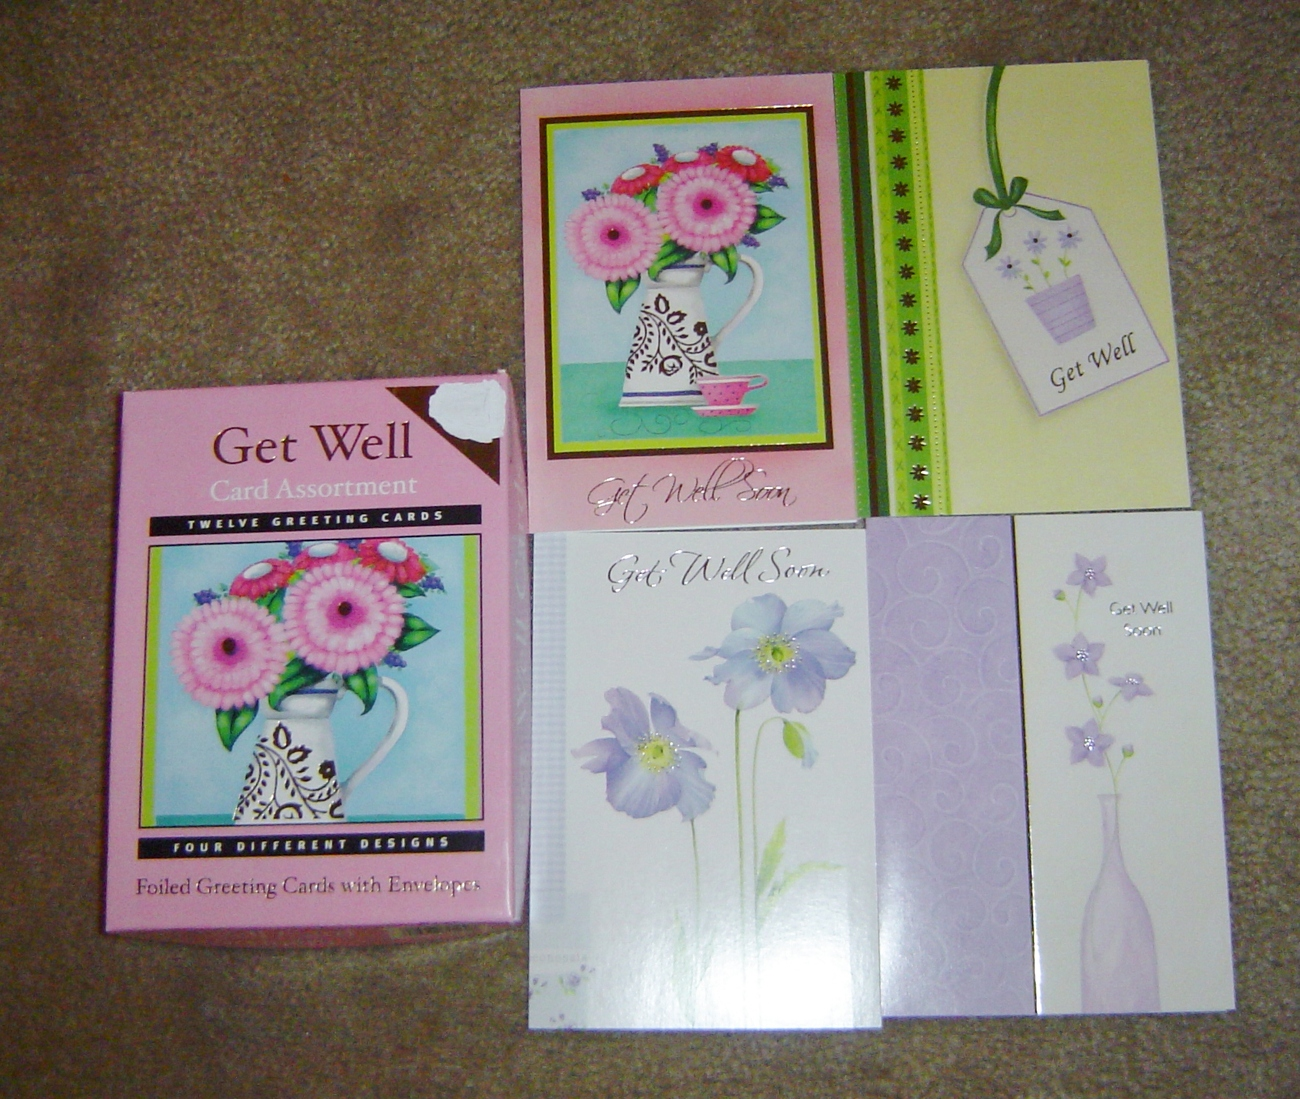 Get Well Greeting Note Cards Foiled Assortment 12 Cards & Envelopes